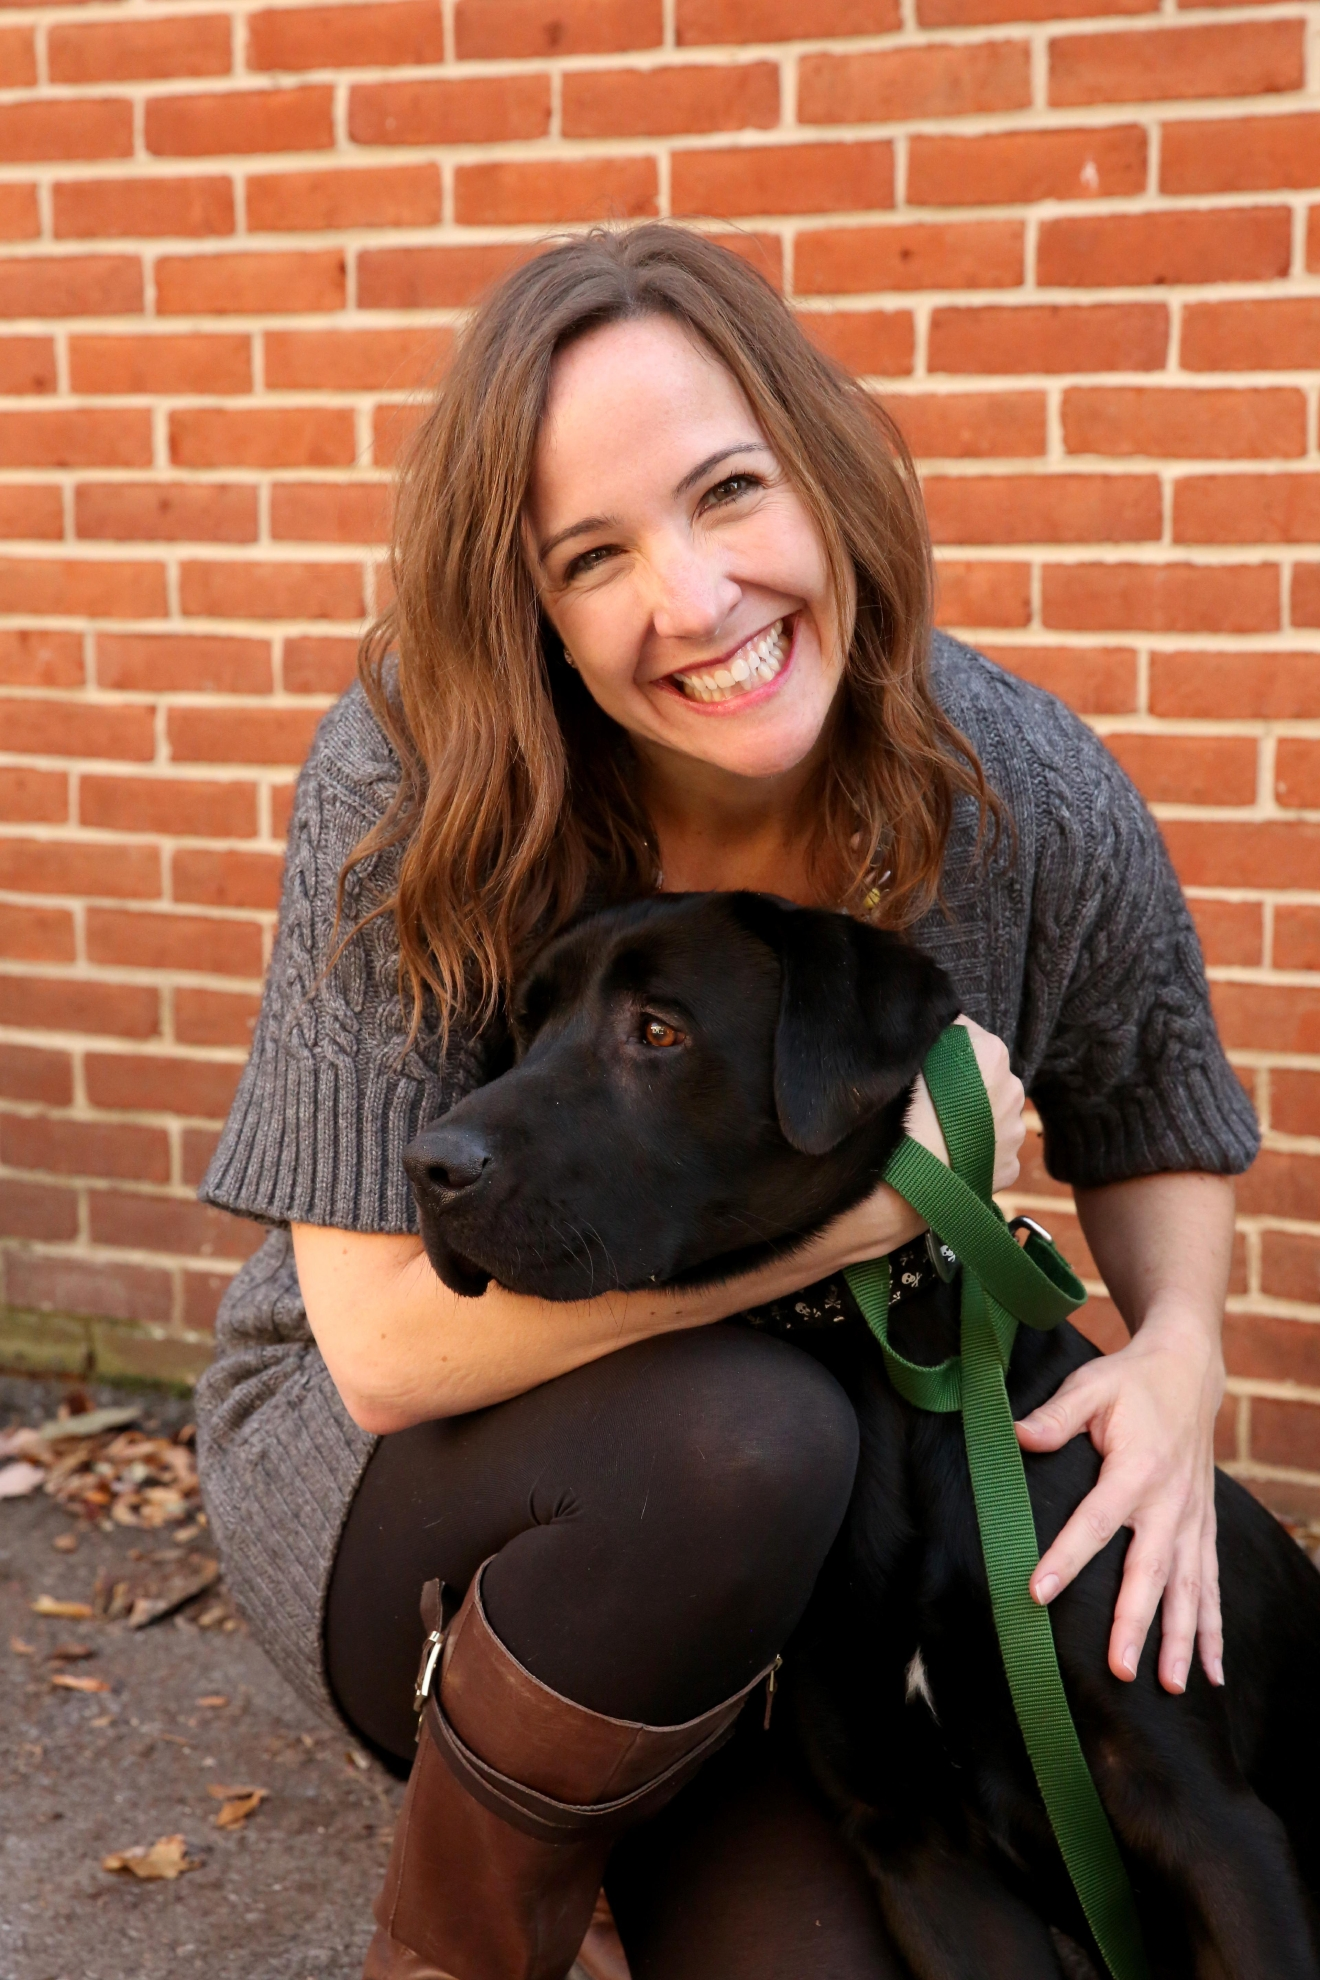 4-year-old Baxter is available for adoption at the Humane Rescue Alliance's Oglethorpe location.  Kate McElligott| 34-years-old| Washington, D.C.| Business Development and Marketing Professional (Amanda Andrade-Rhoades/DC Refined)